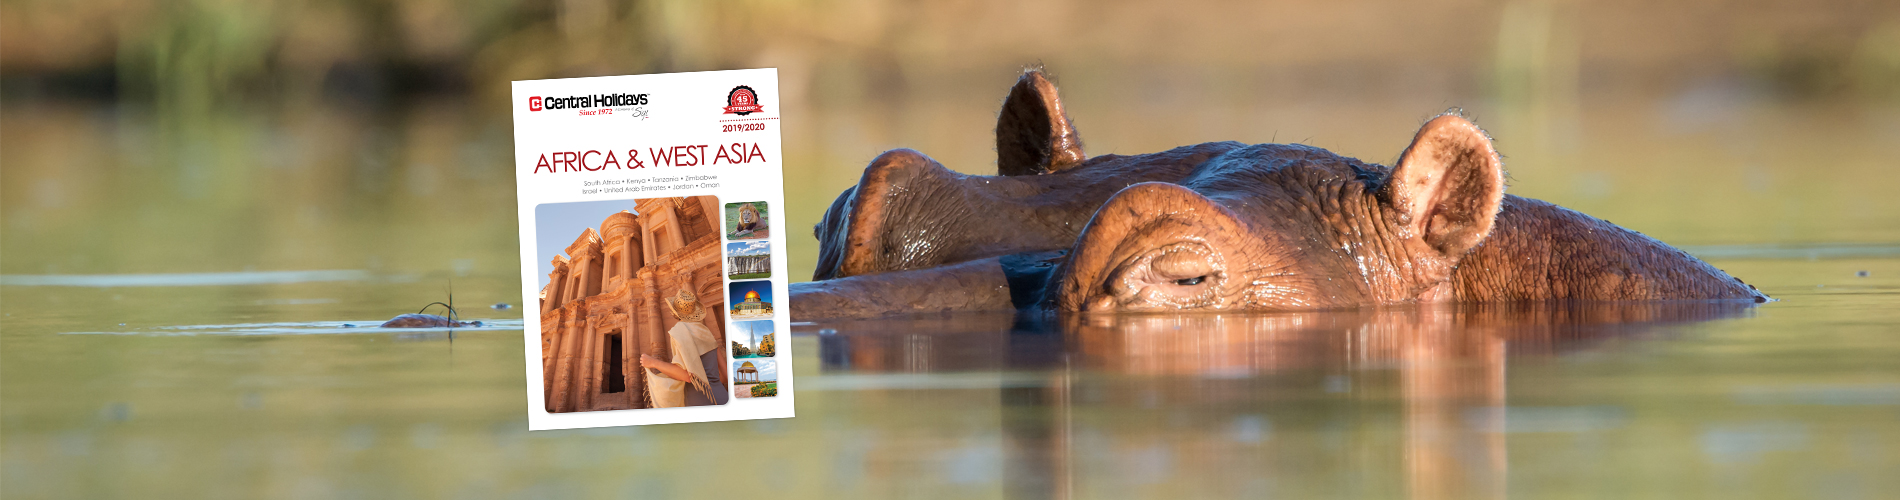 Our NEW 2019 Africa & West Asia brochure is available